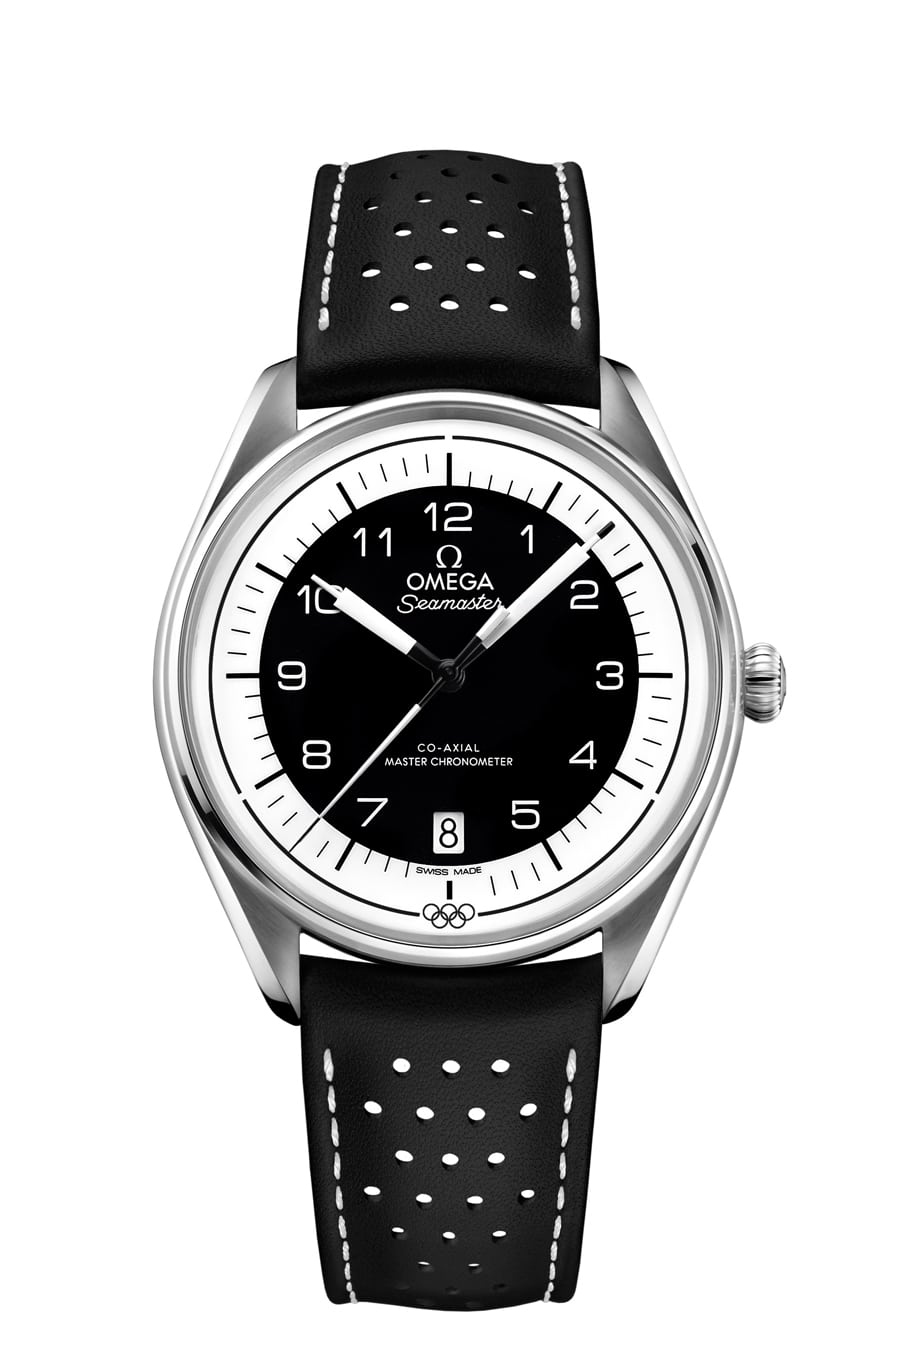 Omega Seamaster Olympic Games Collection in Schwarz (Referenz: 522.32.40.20.01.003)